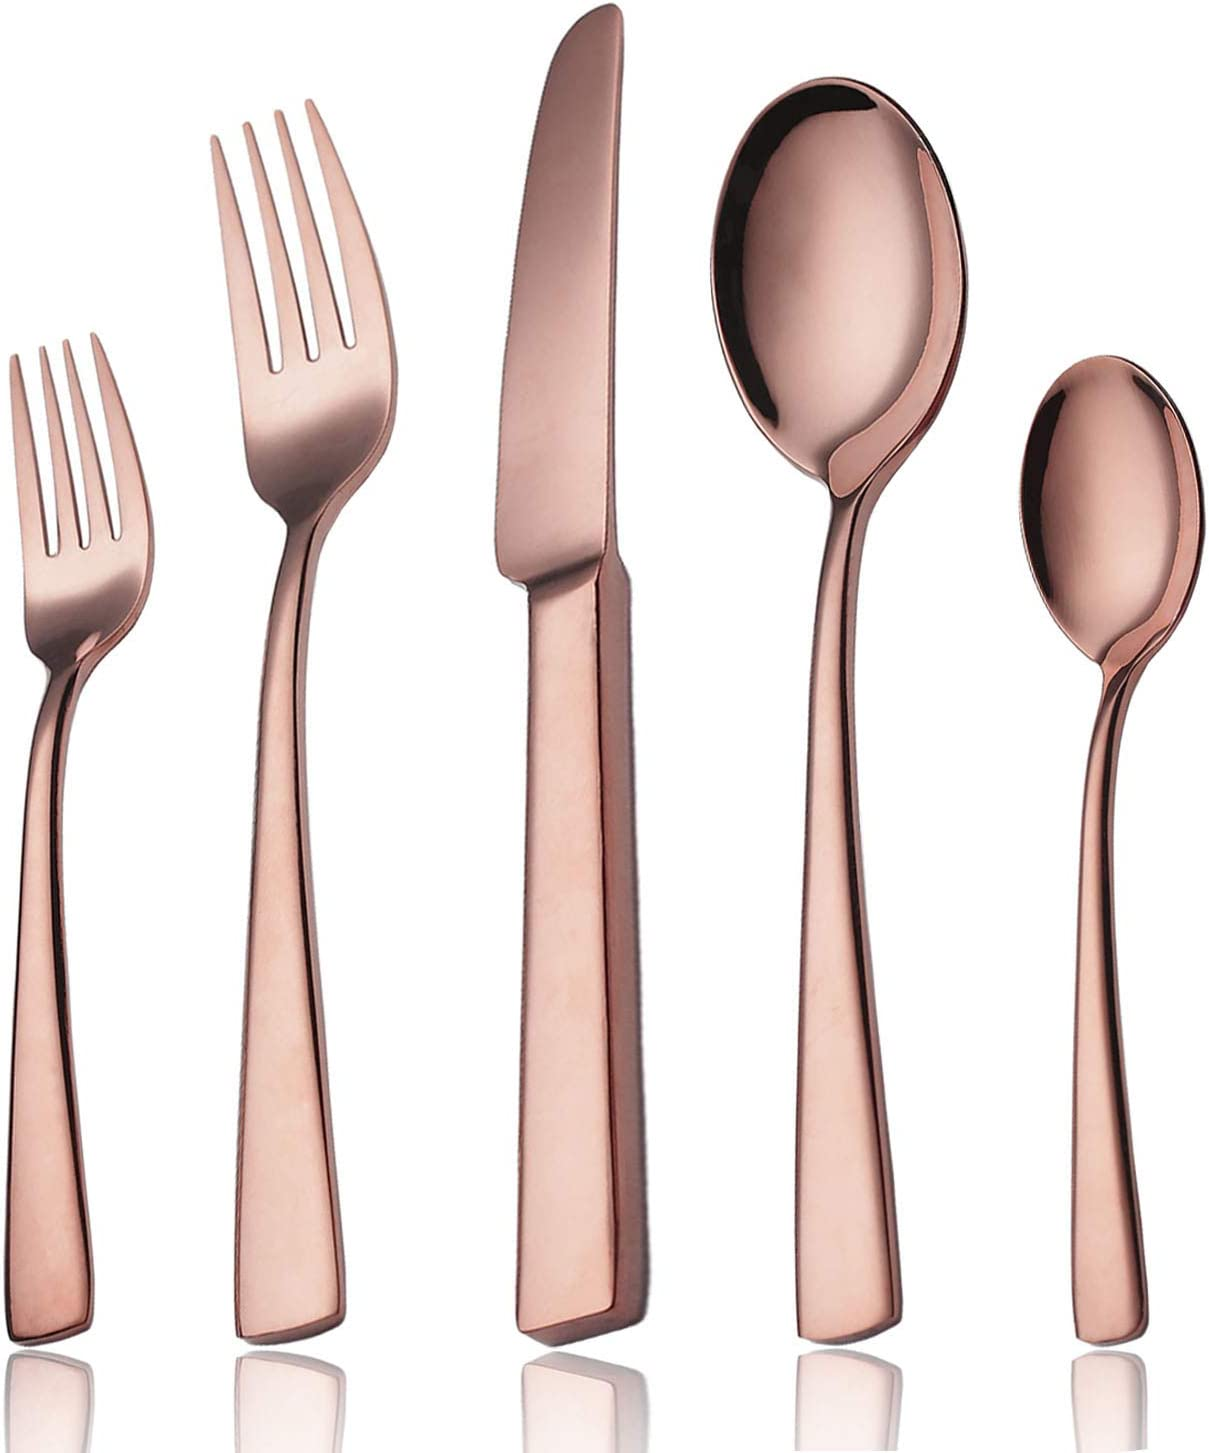 Silverware Set Rose Gold, 20 Pieces Flatware Stainless Steel Cutlery Utensils Dinnerware Kitchen with Forks Spoons Knifes Mirror Polished Dishwasher Safe Gift Box Service for 4 Copper